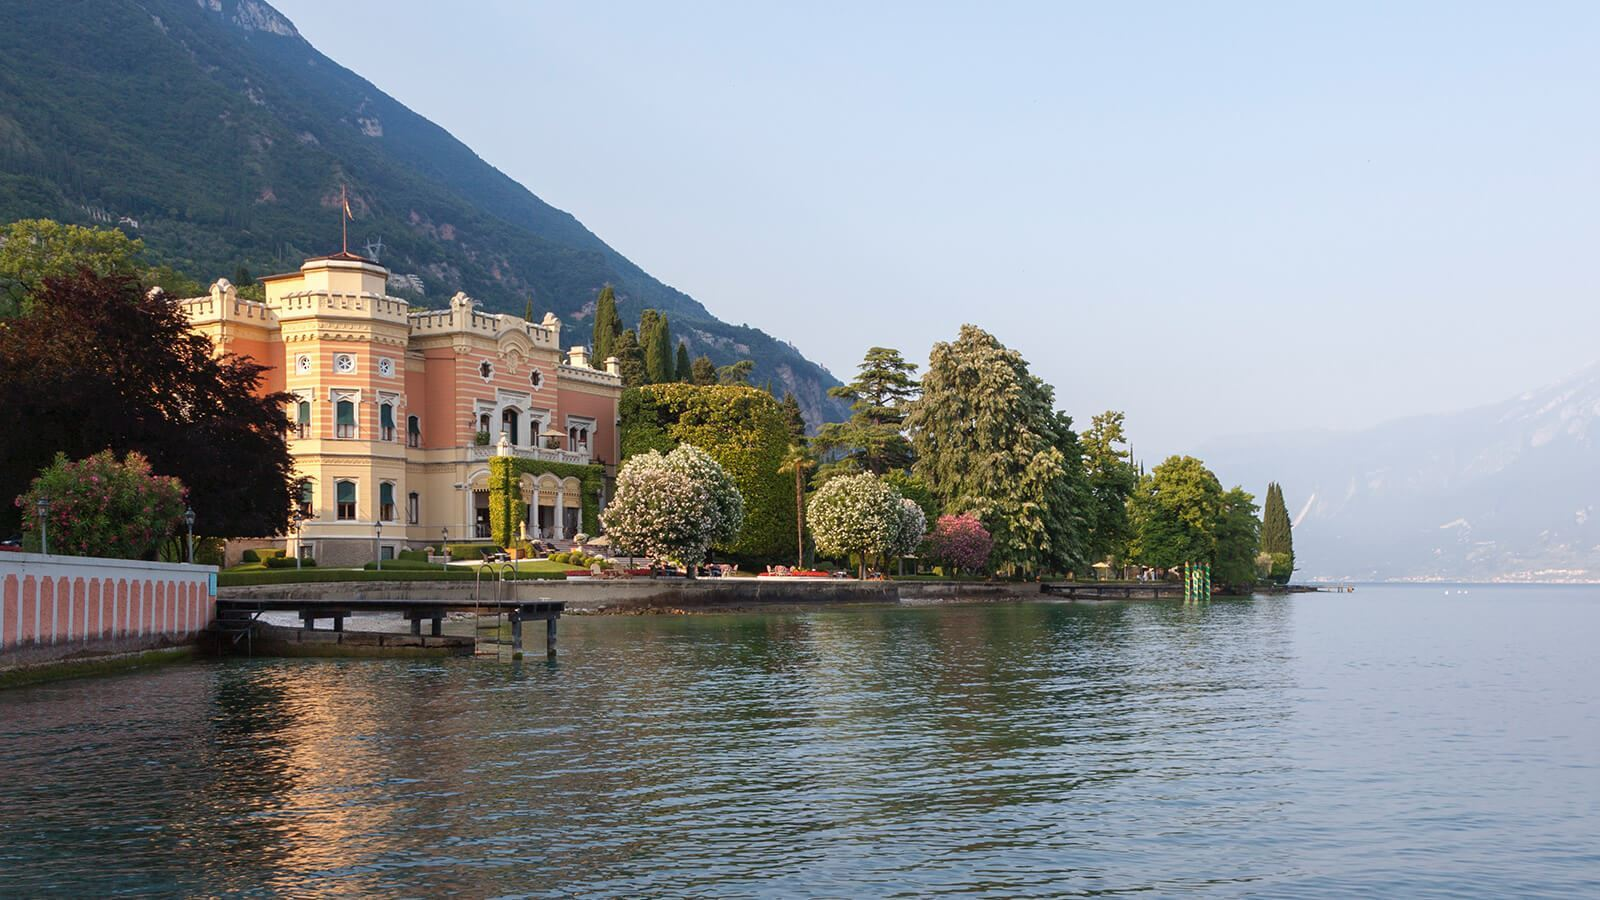 Grand Hotel a Villa Feltrinelli - The stillness of the lake of Garda